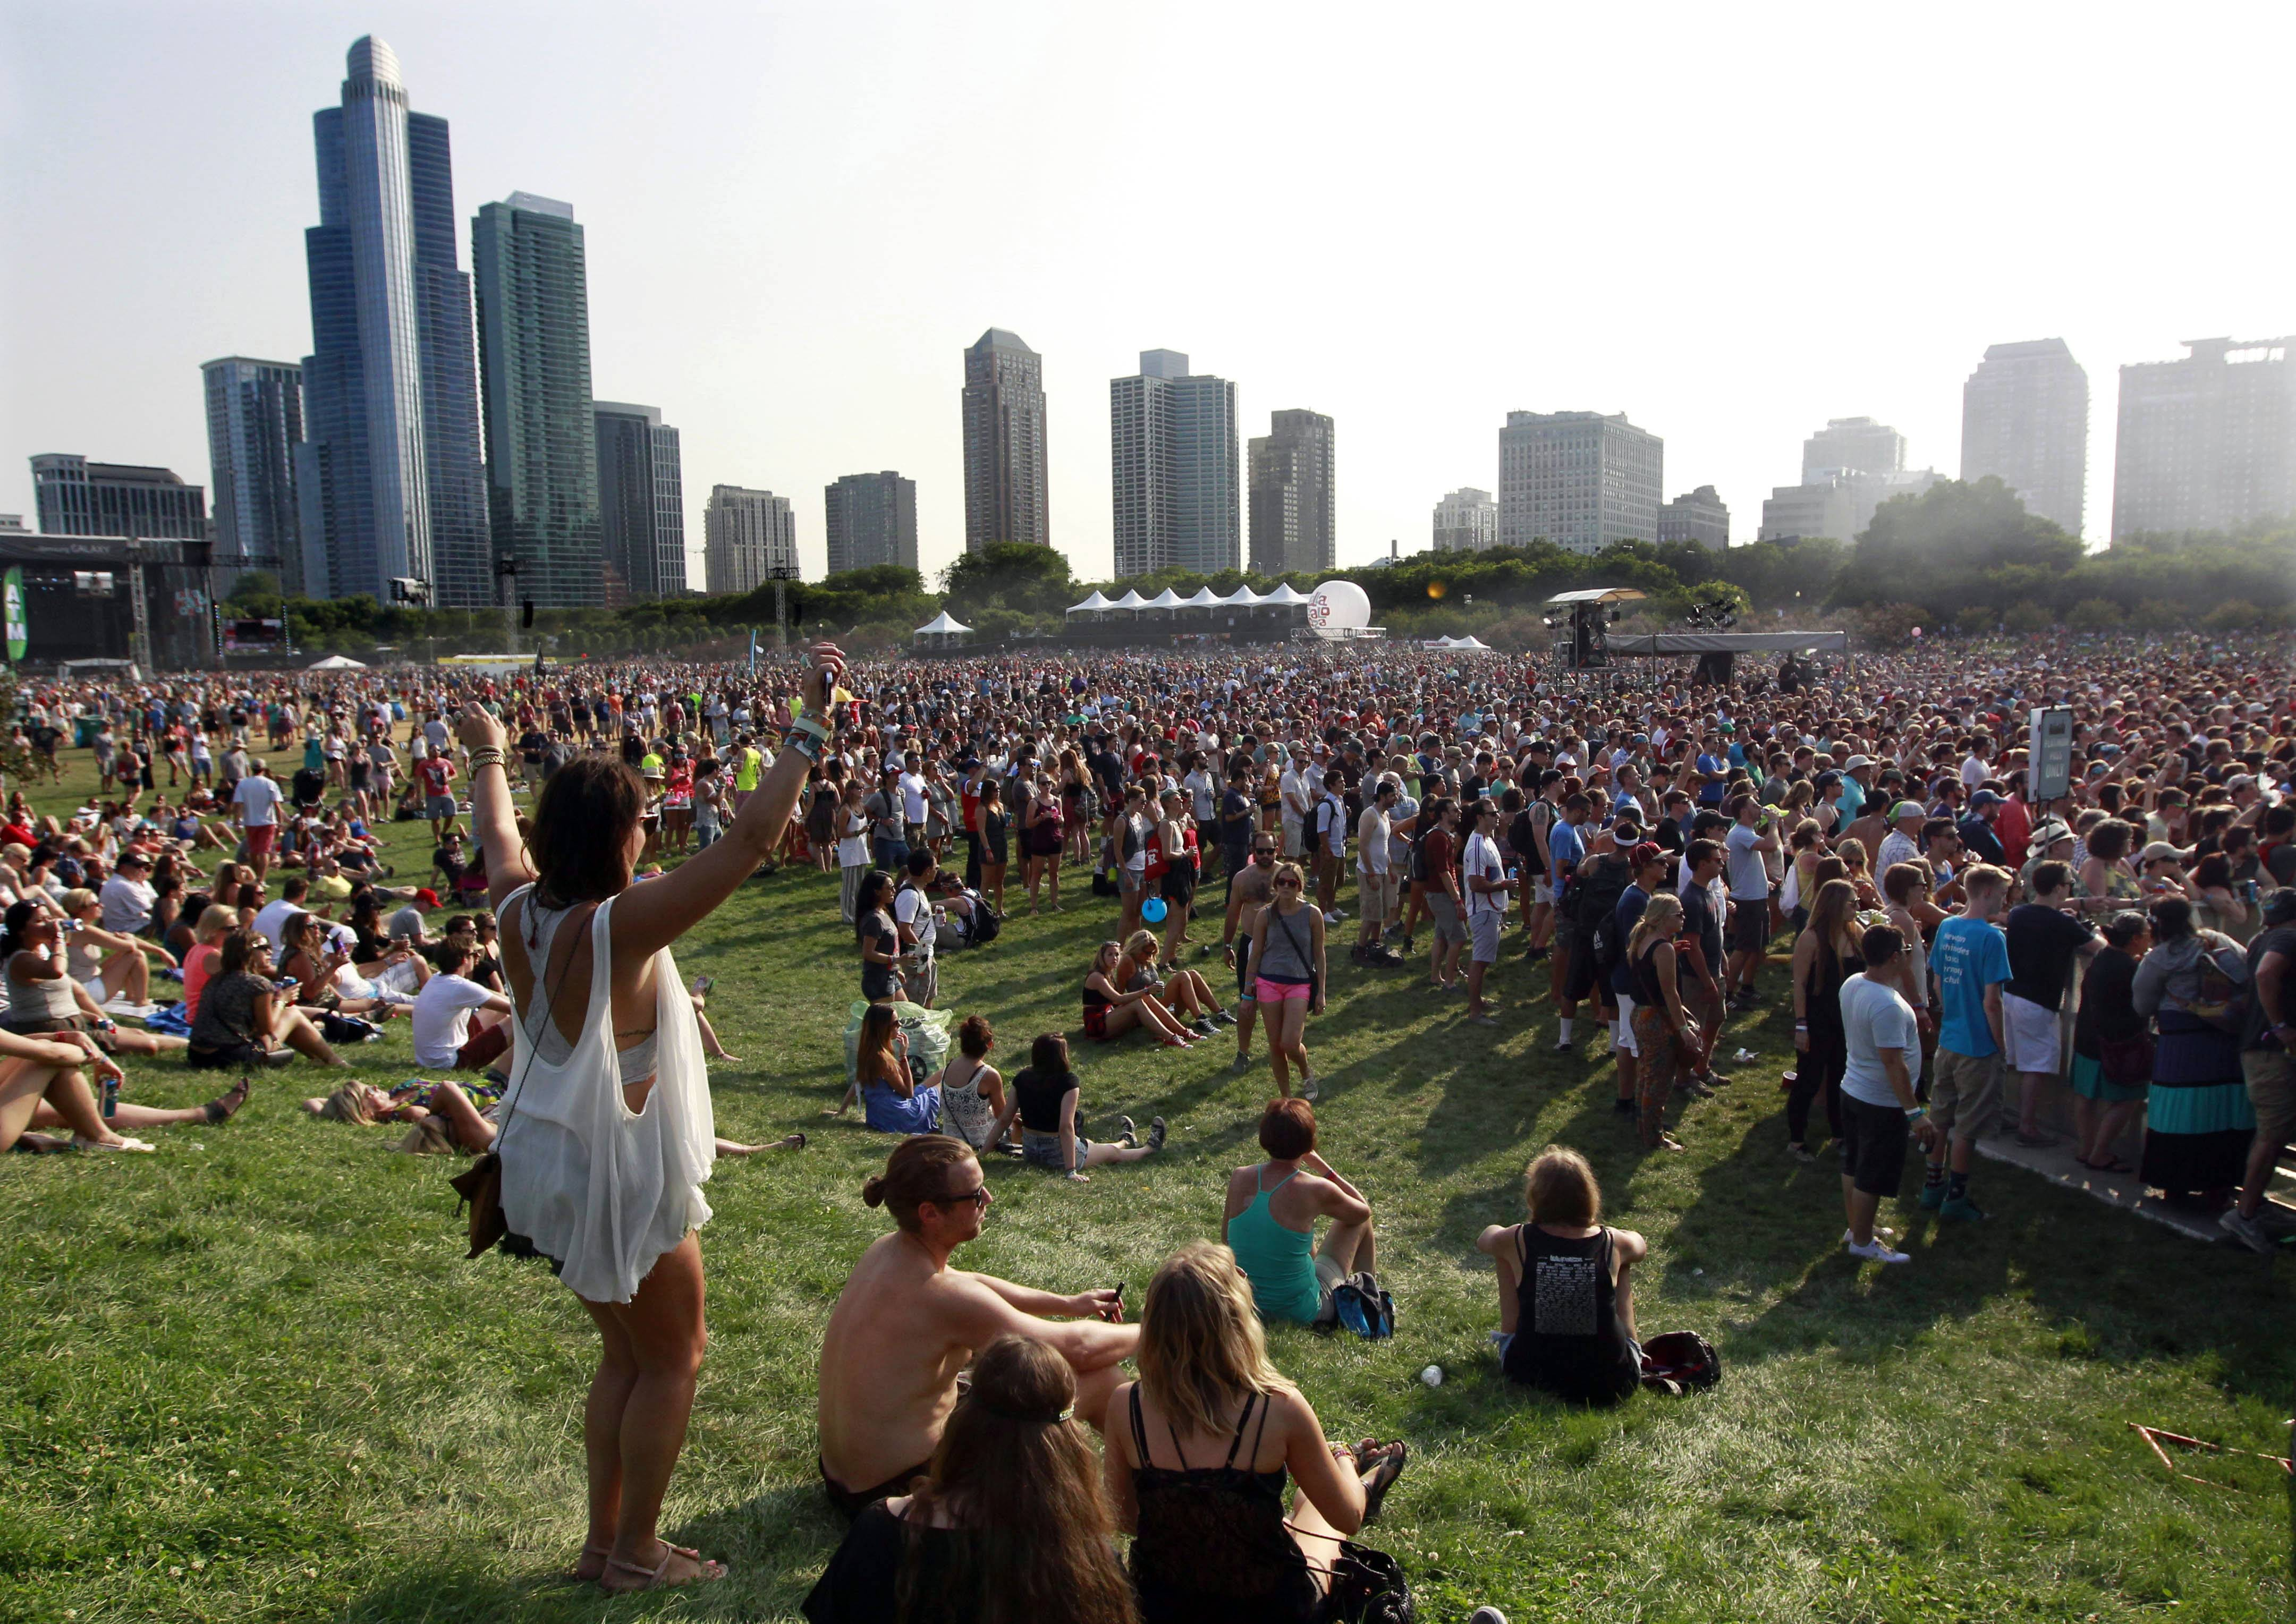 Fans listen to Manchester Orchestra on Saturday during the second day of Lollapalooza in Chicago.